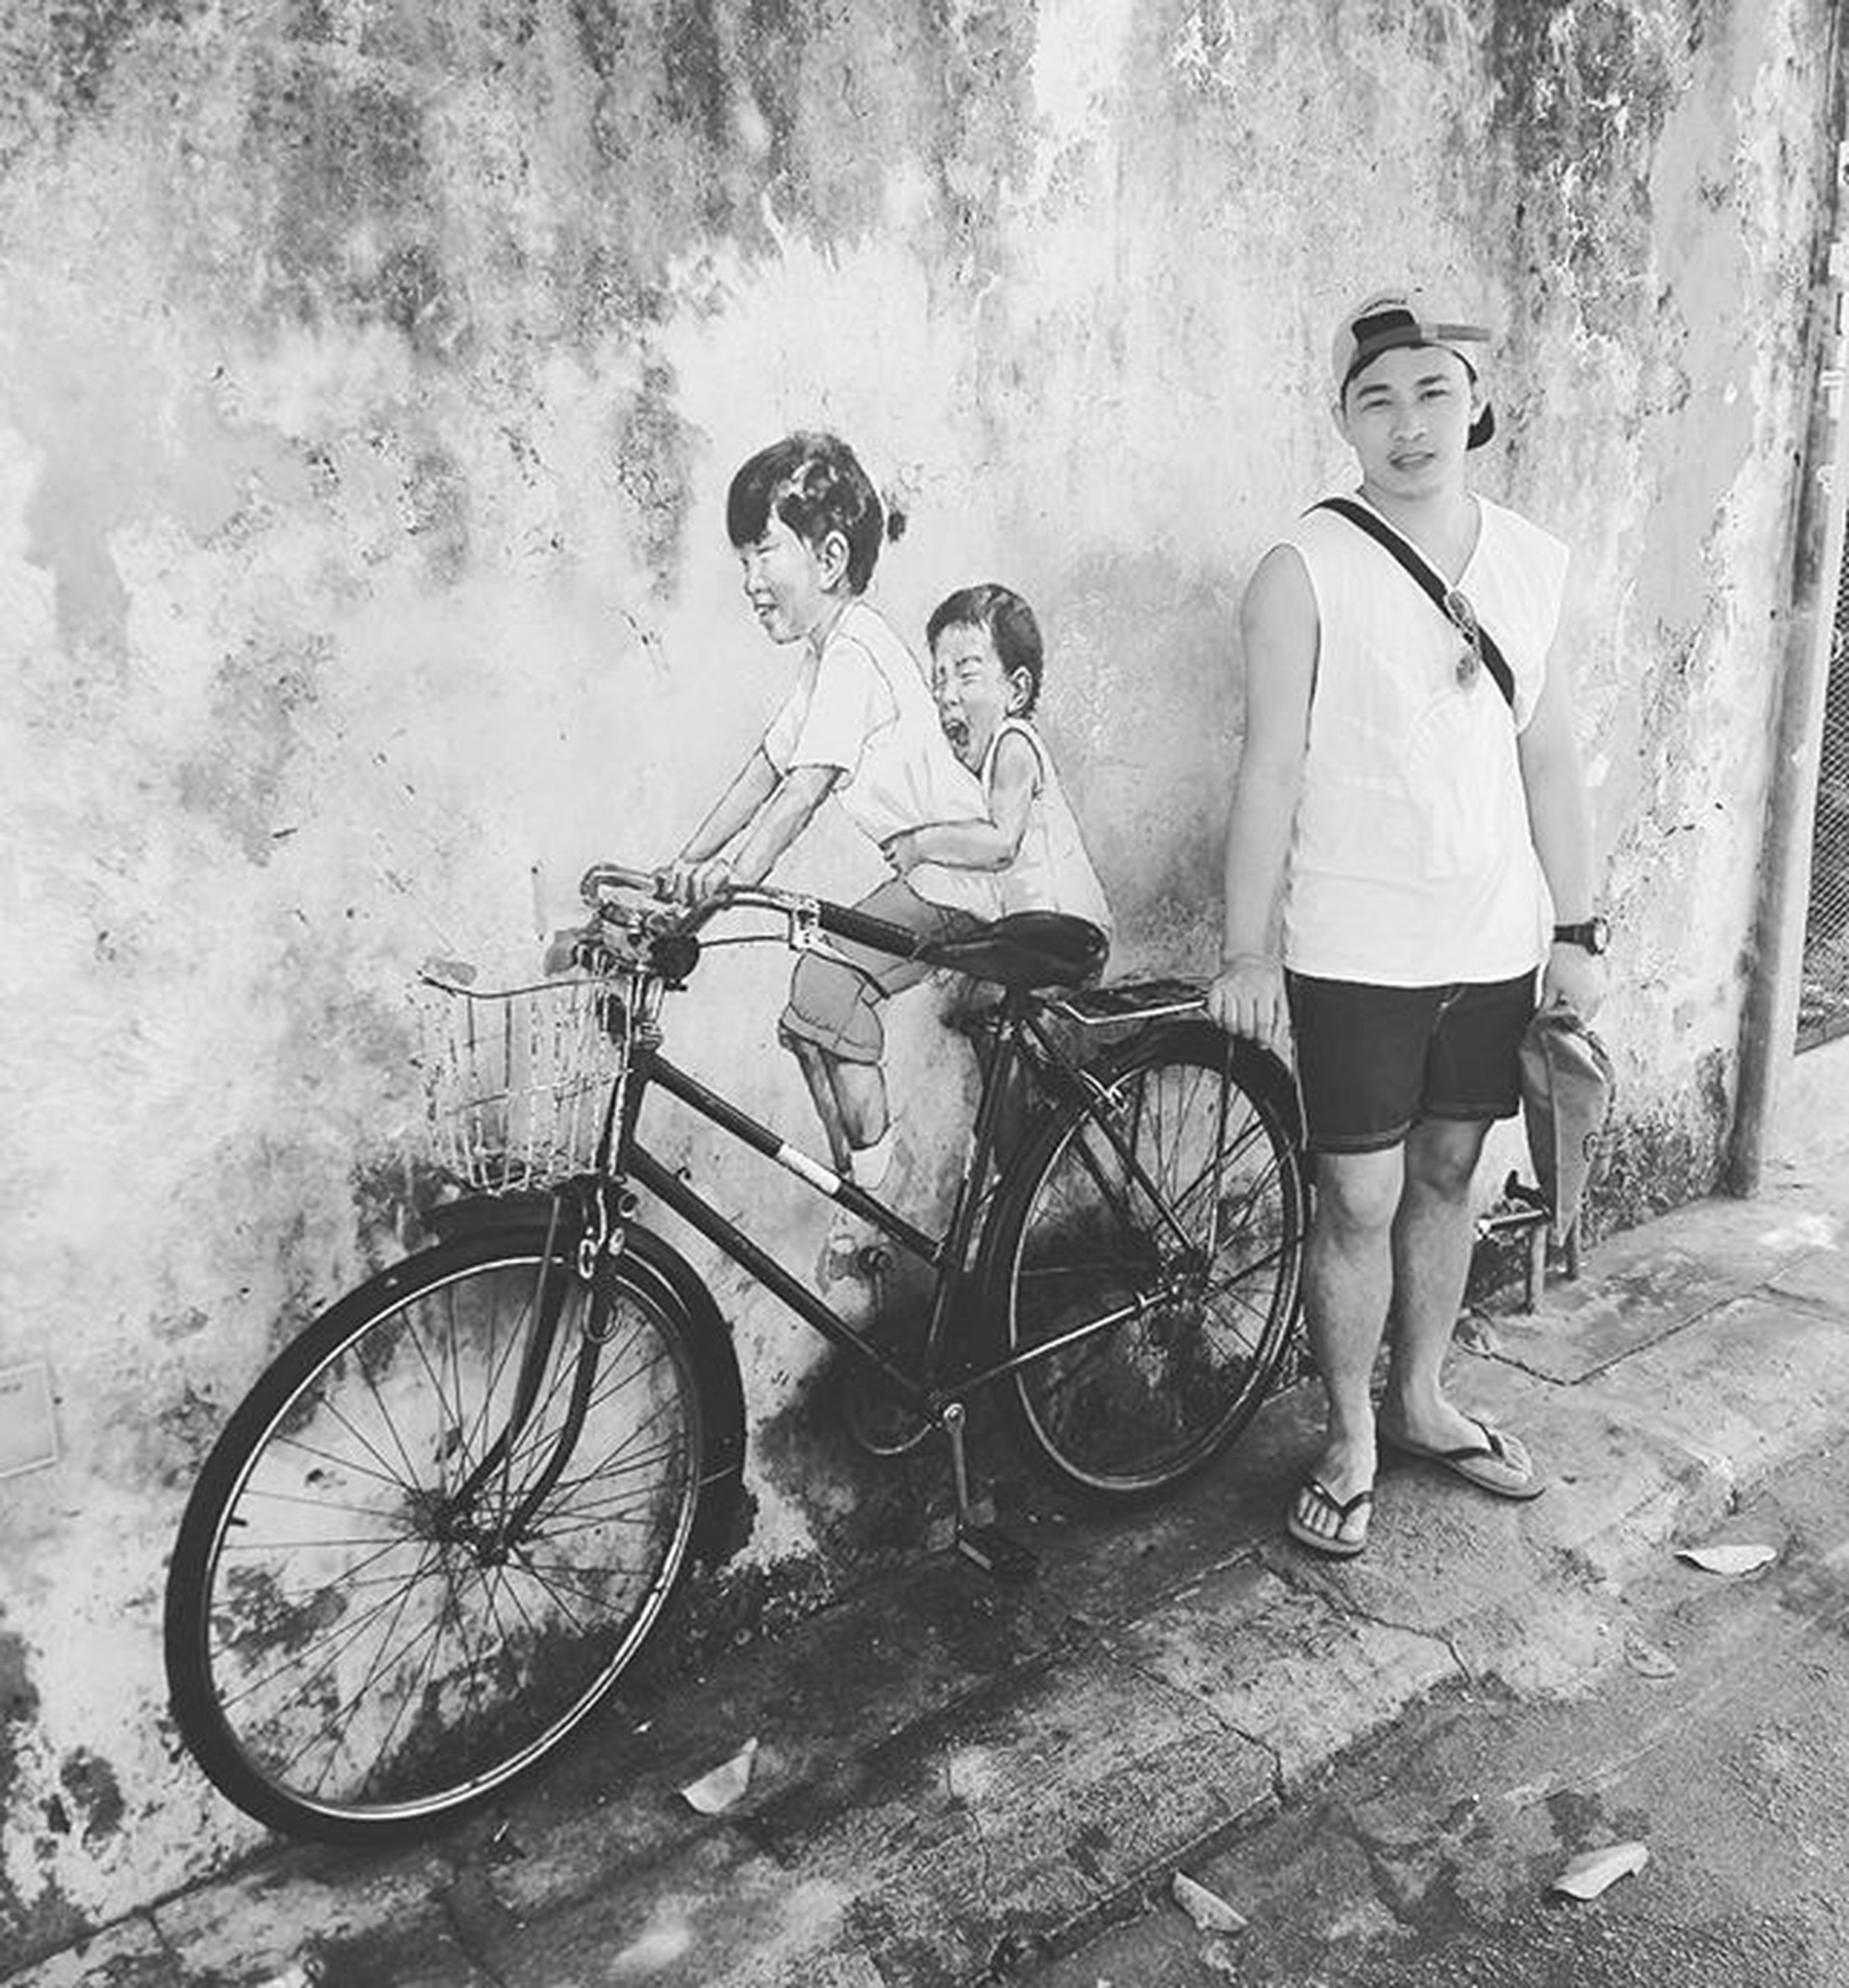 bicycle, lifestyles, full length, casual clothing, leisure activity, person, boys, land vehicle, childhood, mode of transport, elementary age, transportation, side view, men, girls, young adult, street, standing